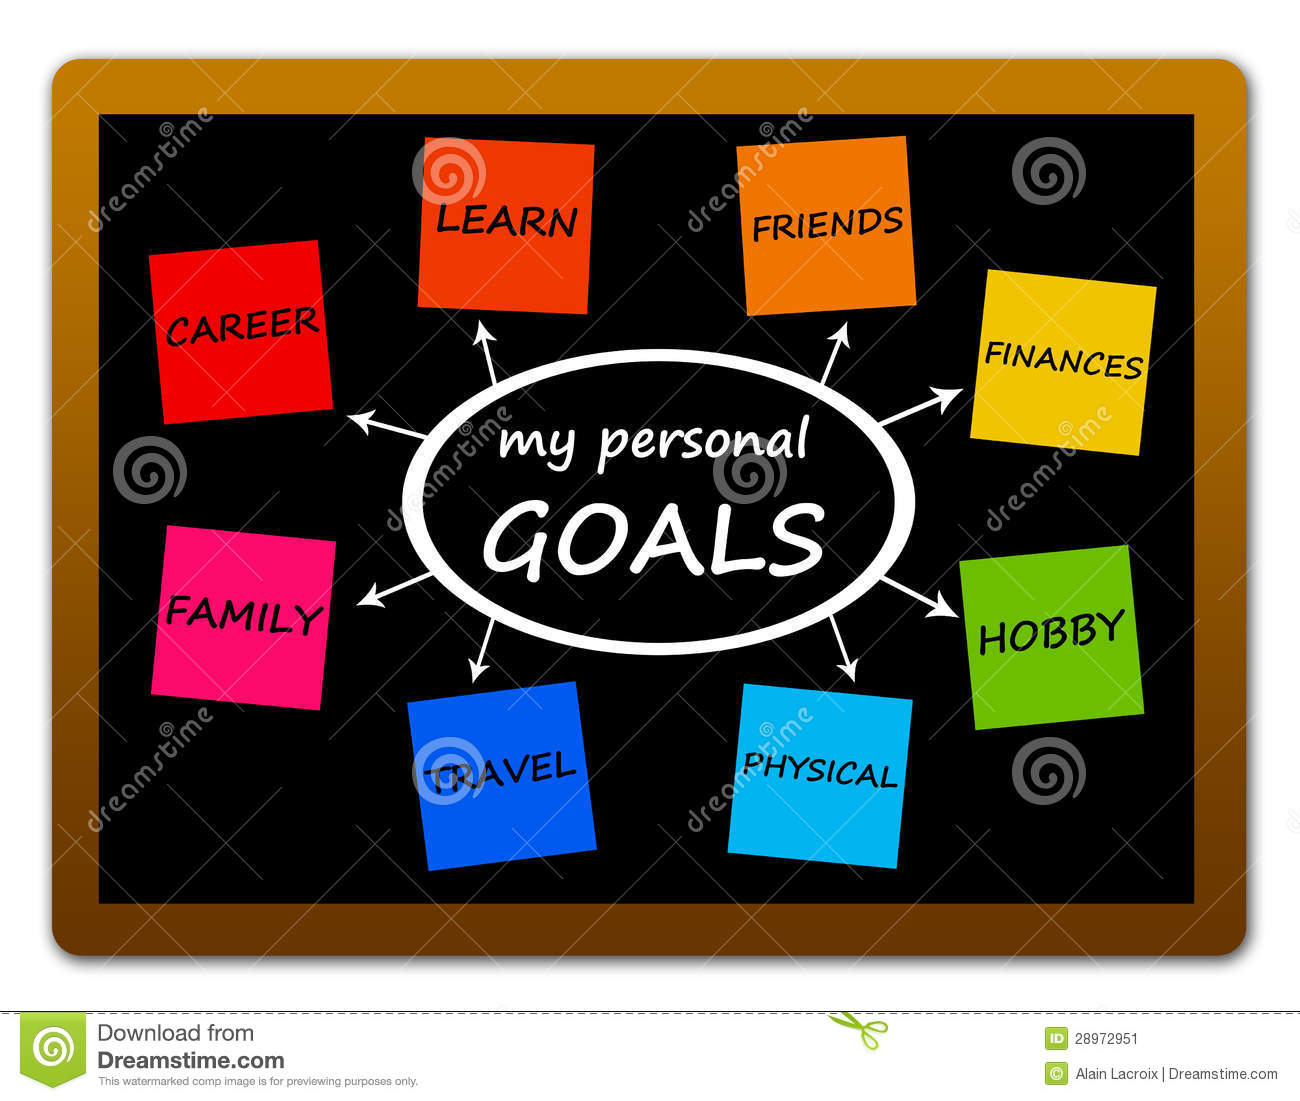 goals personal overview preview dreamstime